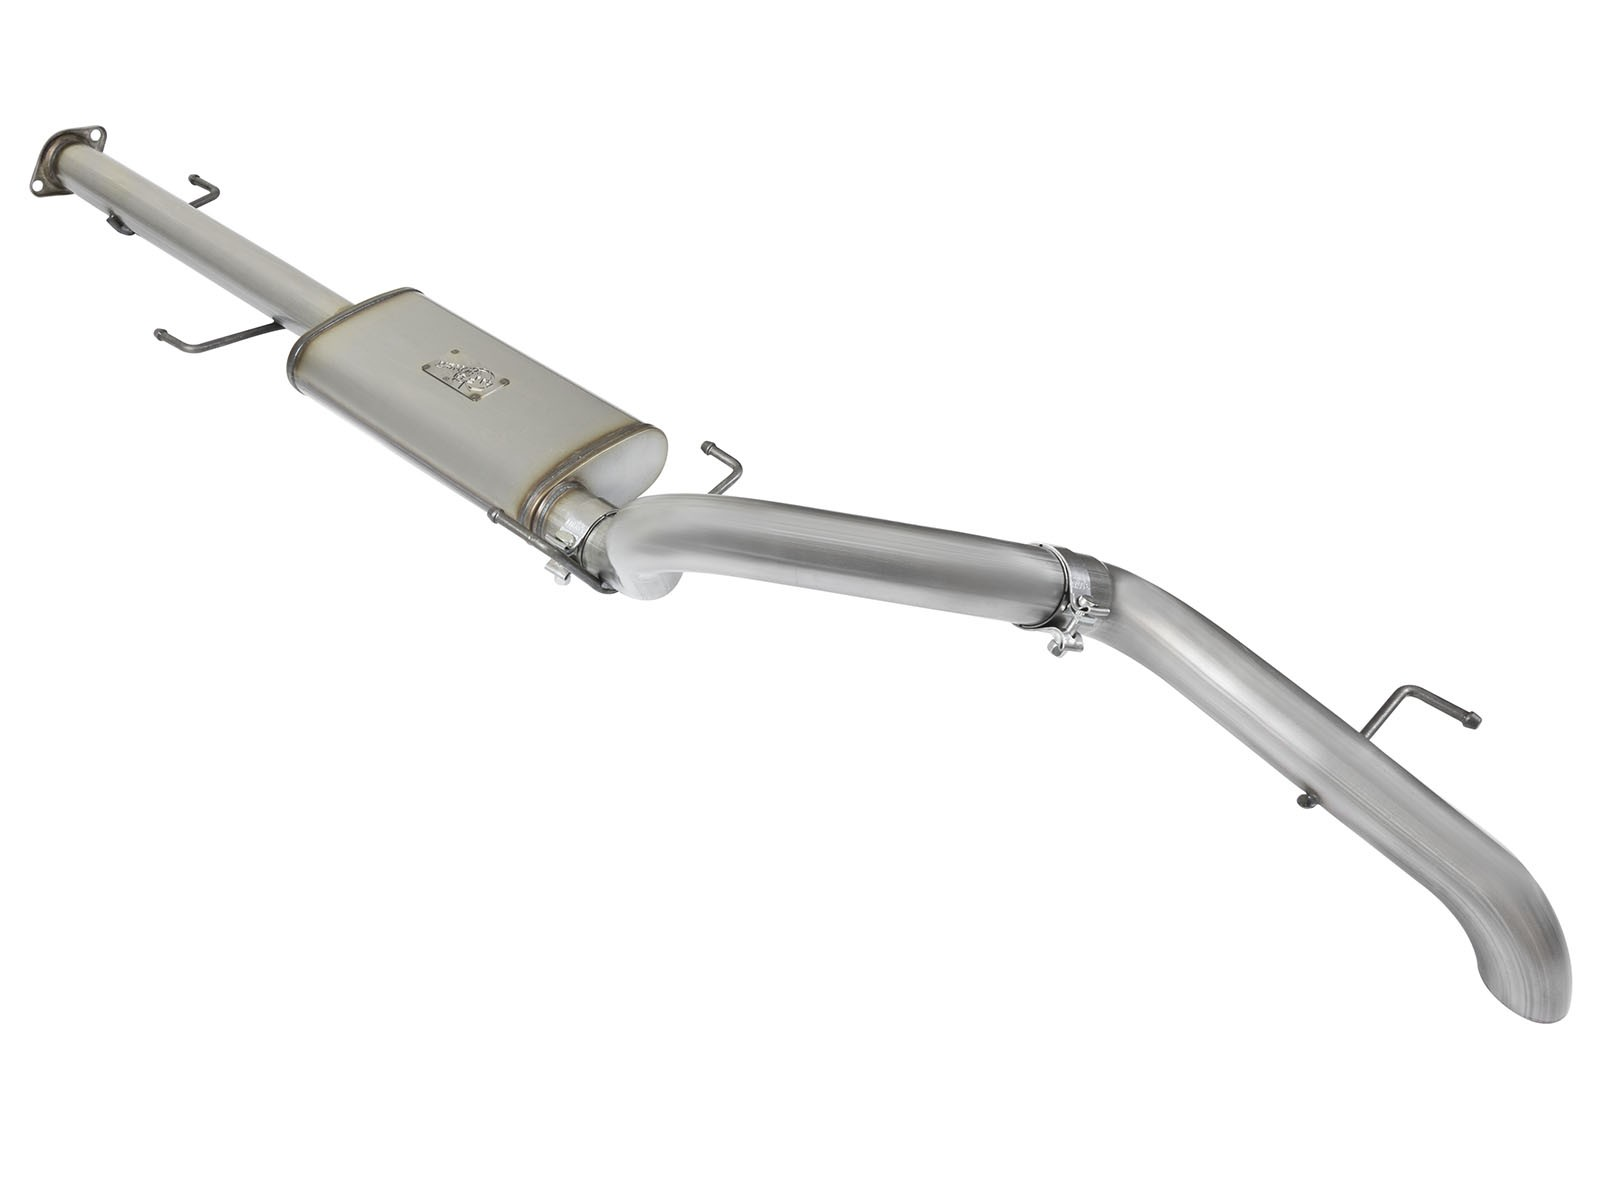 "aFe POWER 49-46005-1 MACH Force-Xp 3"" 409 Stainless Steel Cat-Back Exhaust System"